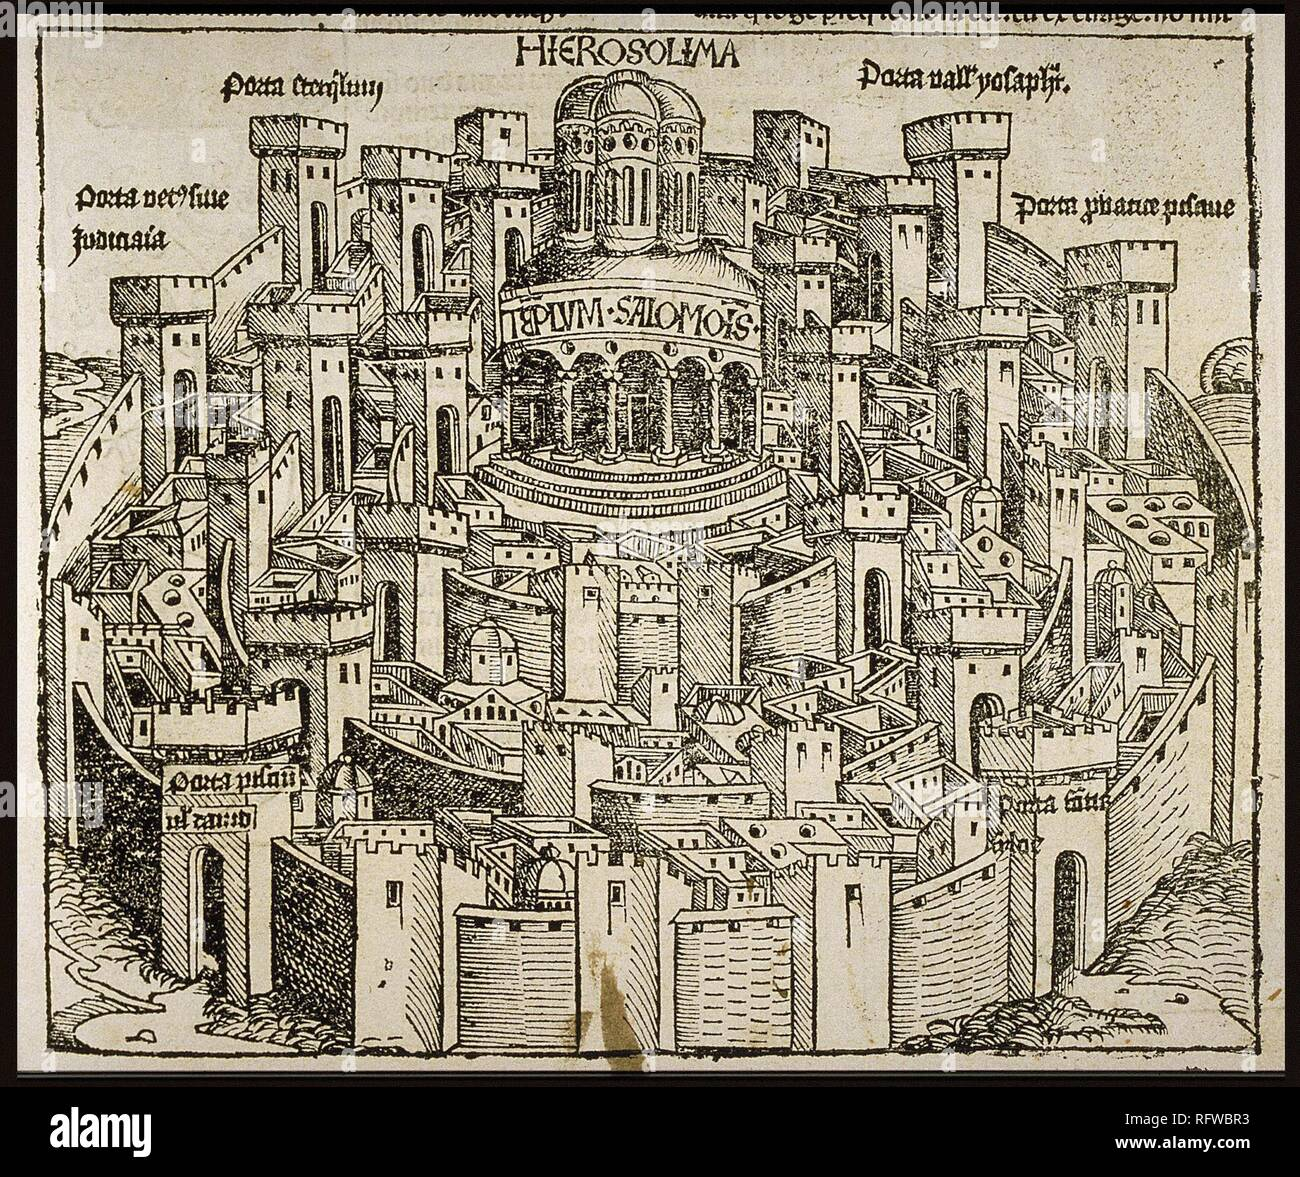 Jerusalem (from the Schedel's Chronicle of the World). Museum: PRIVATE COLLECTION. Author: WOLGEMUT, MICHAEL. - Stock Image